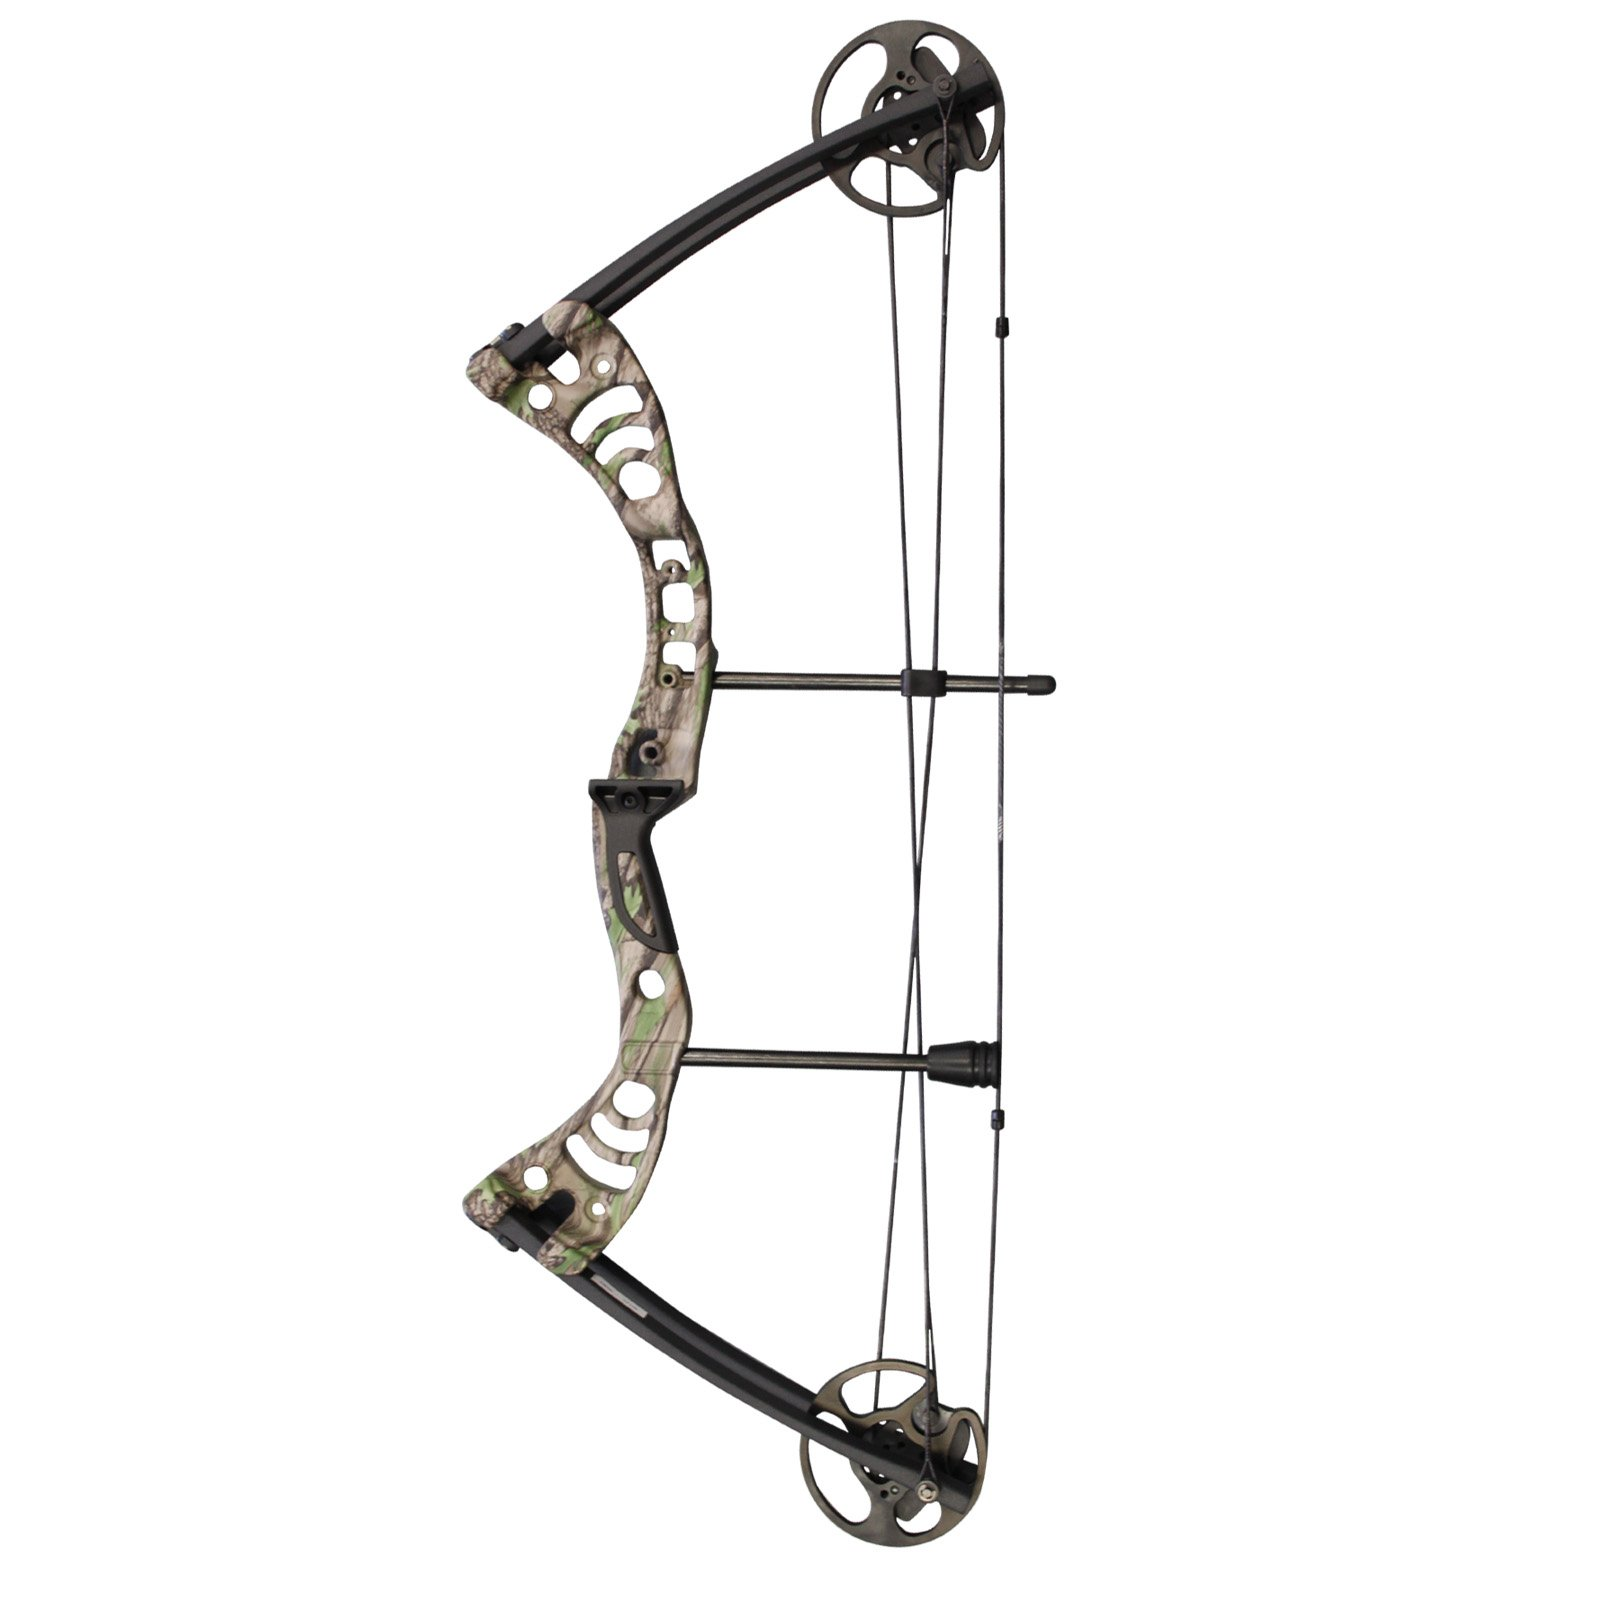 Southland Archery Supply SAS-755GC-BFPRO SAS Scorpii Compound Bowfishing Bow Kit (GC Camo Pro Package) by Southland Archery Supply